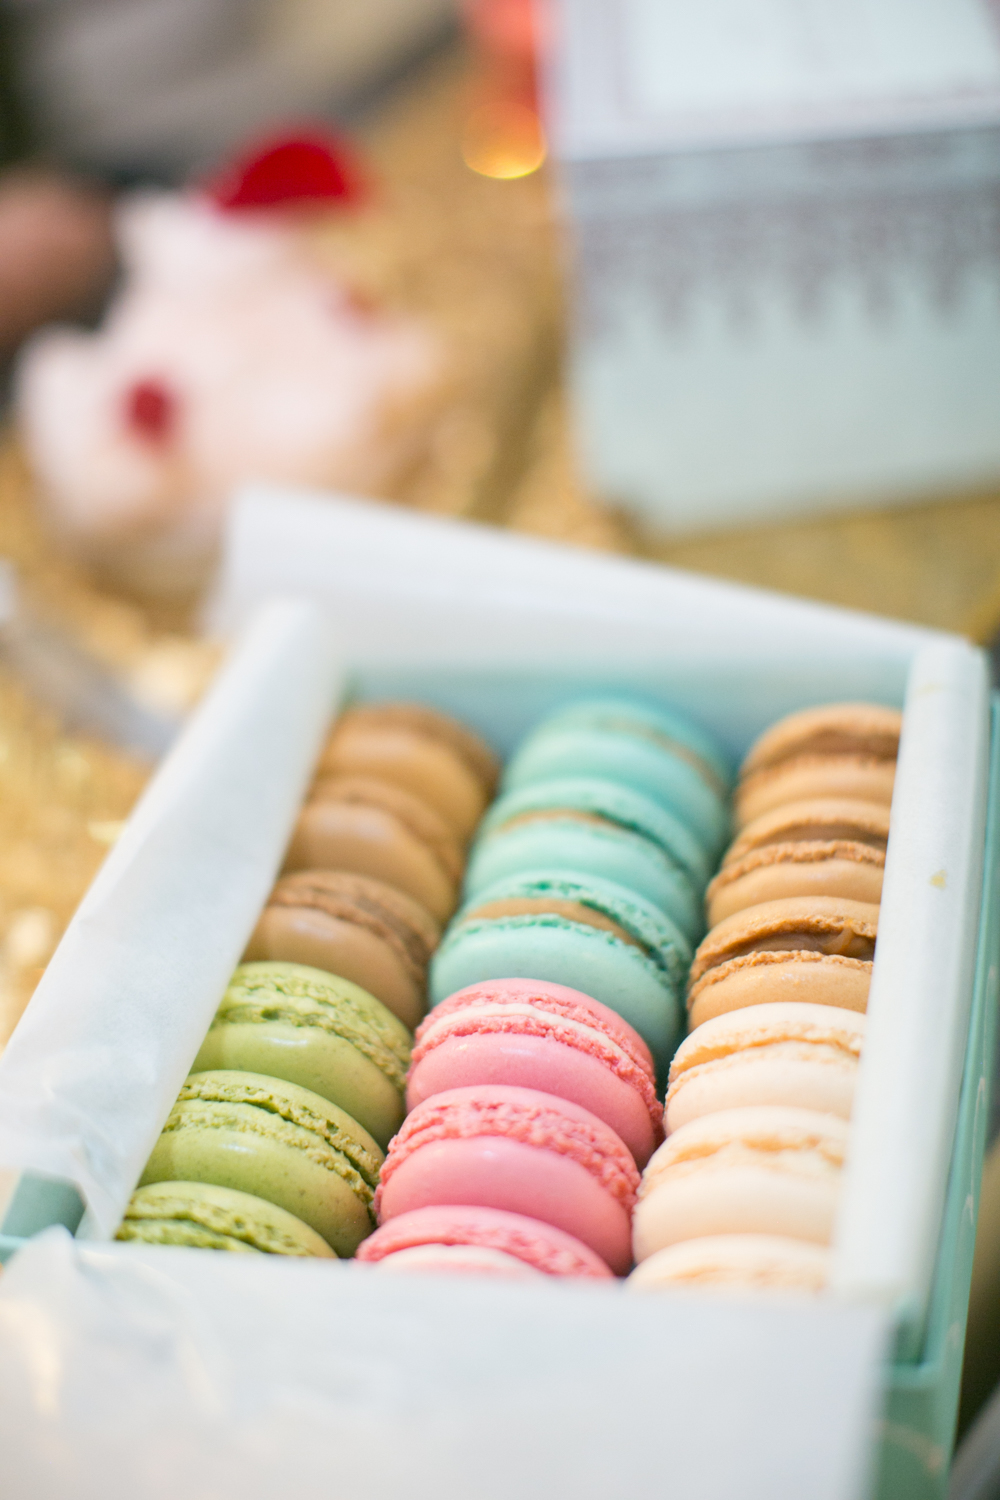 Wedding macarons from laduree